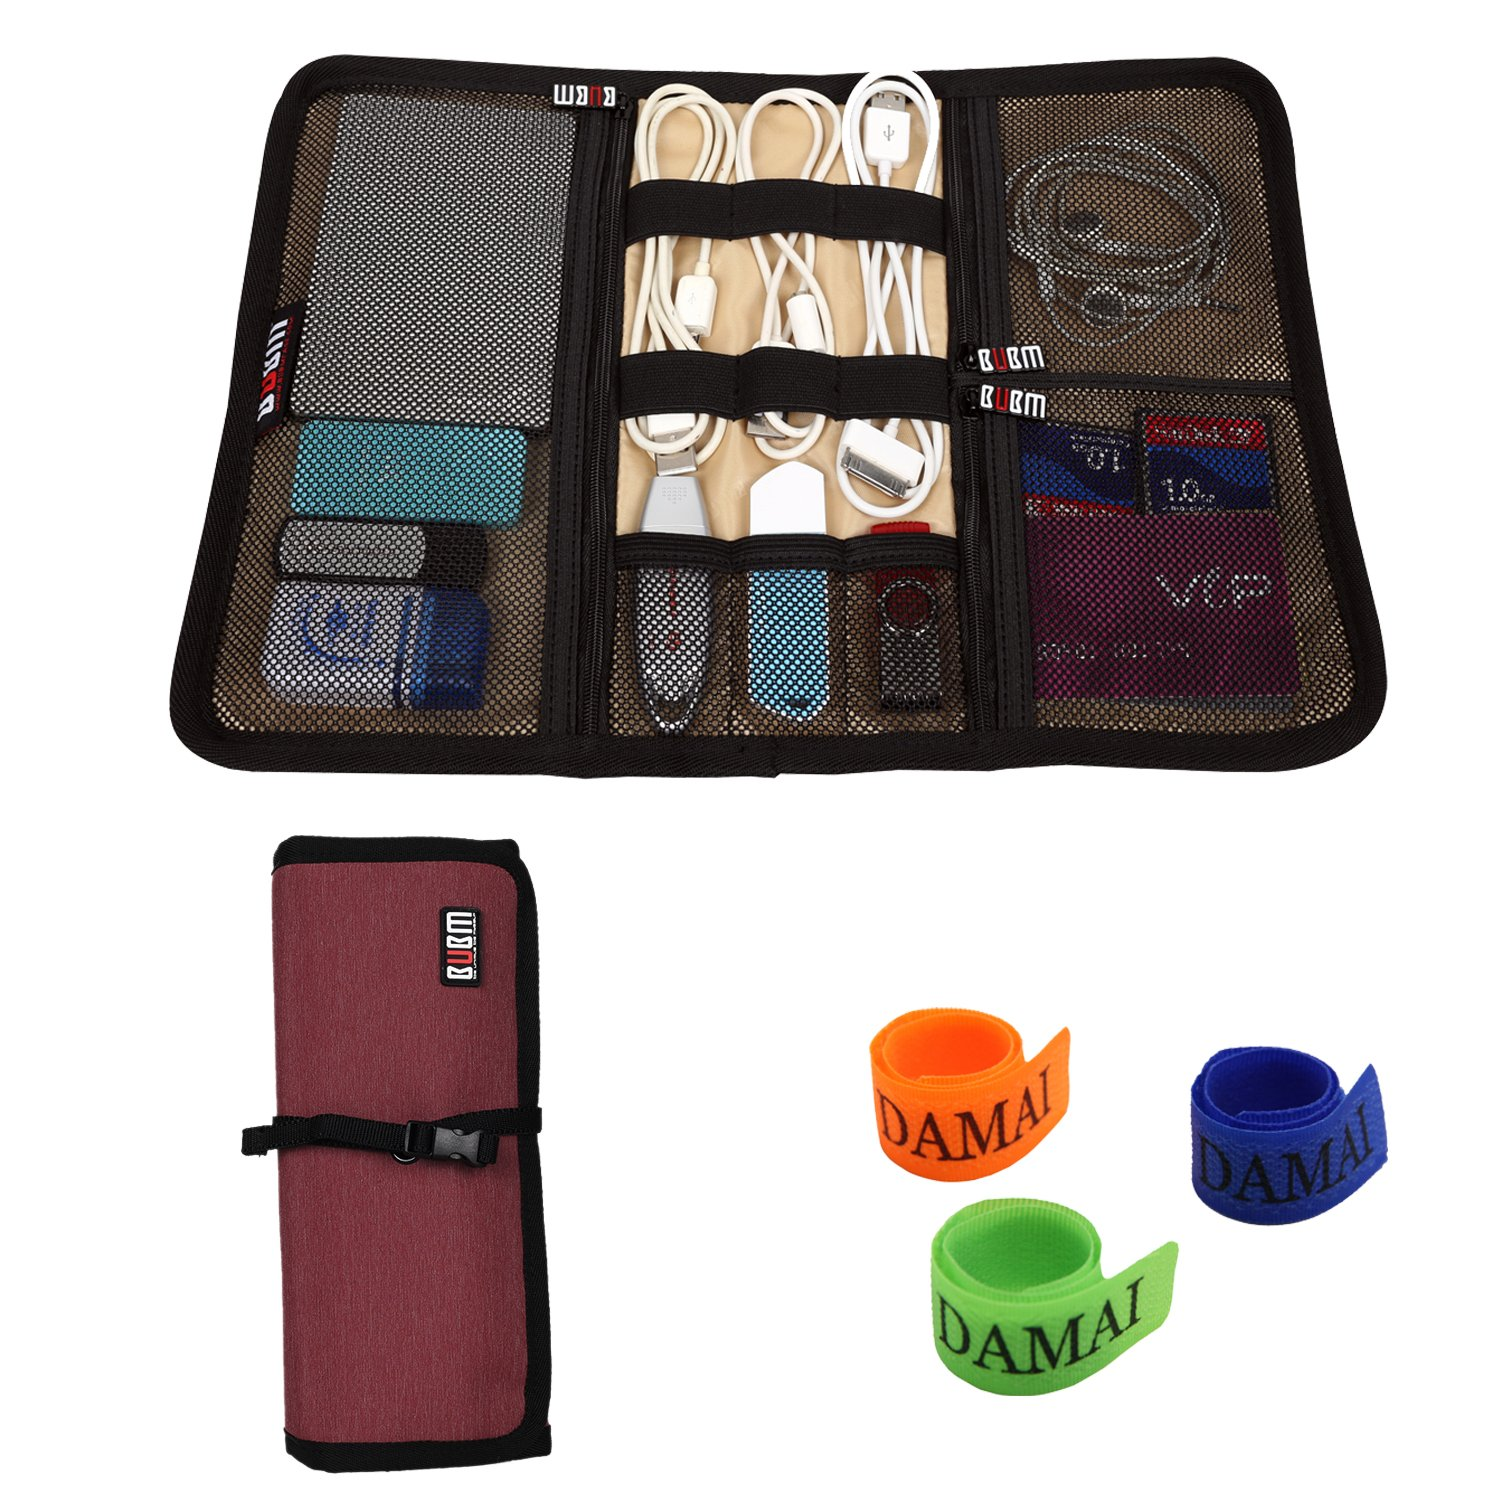 BUBM Portable Universal Wrap Electronics Accessories Travel Organizer / Hard Drive Bag / Cable Stable with Cable Tie (Medium-Wine Red)